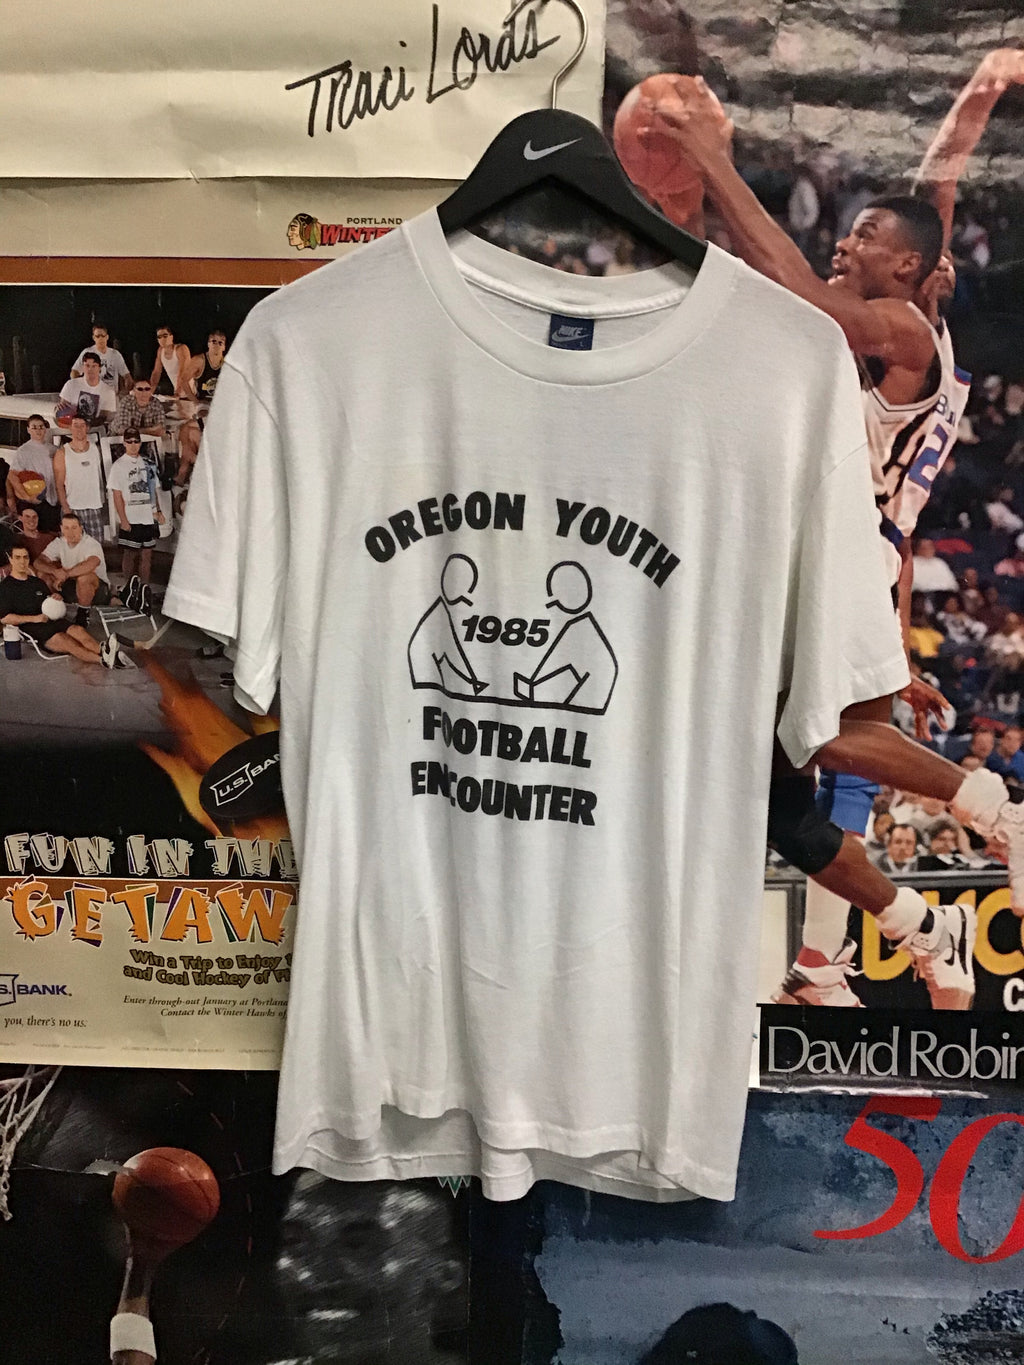 Nike Football Encounter Tee Large - Decades of dope